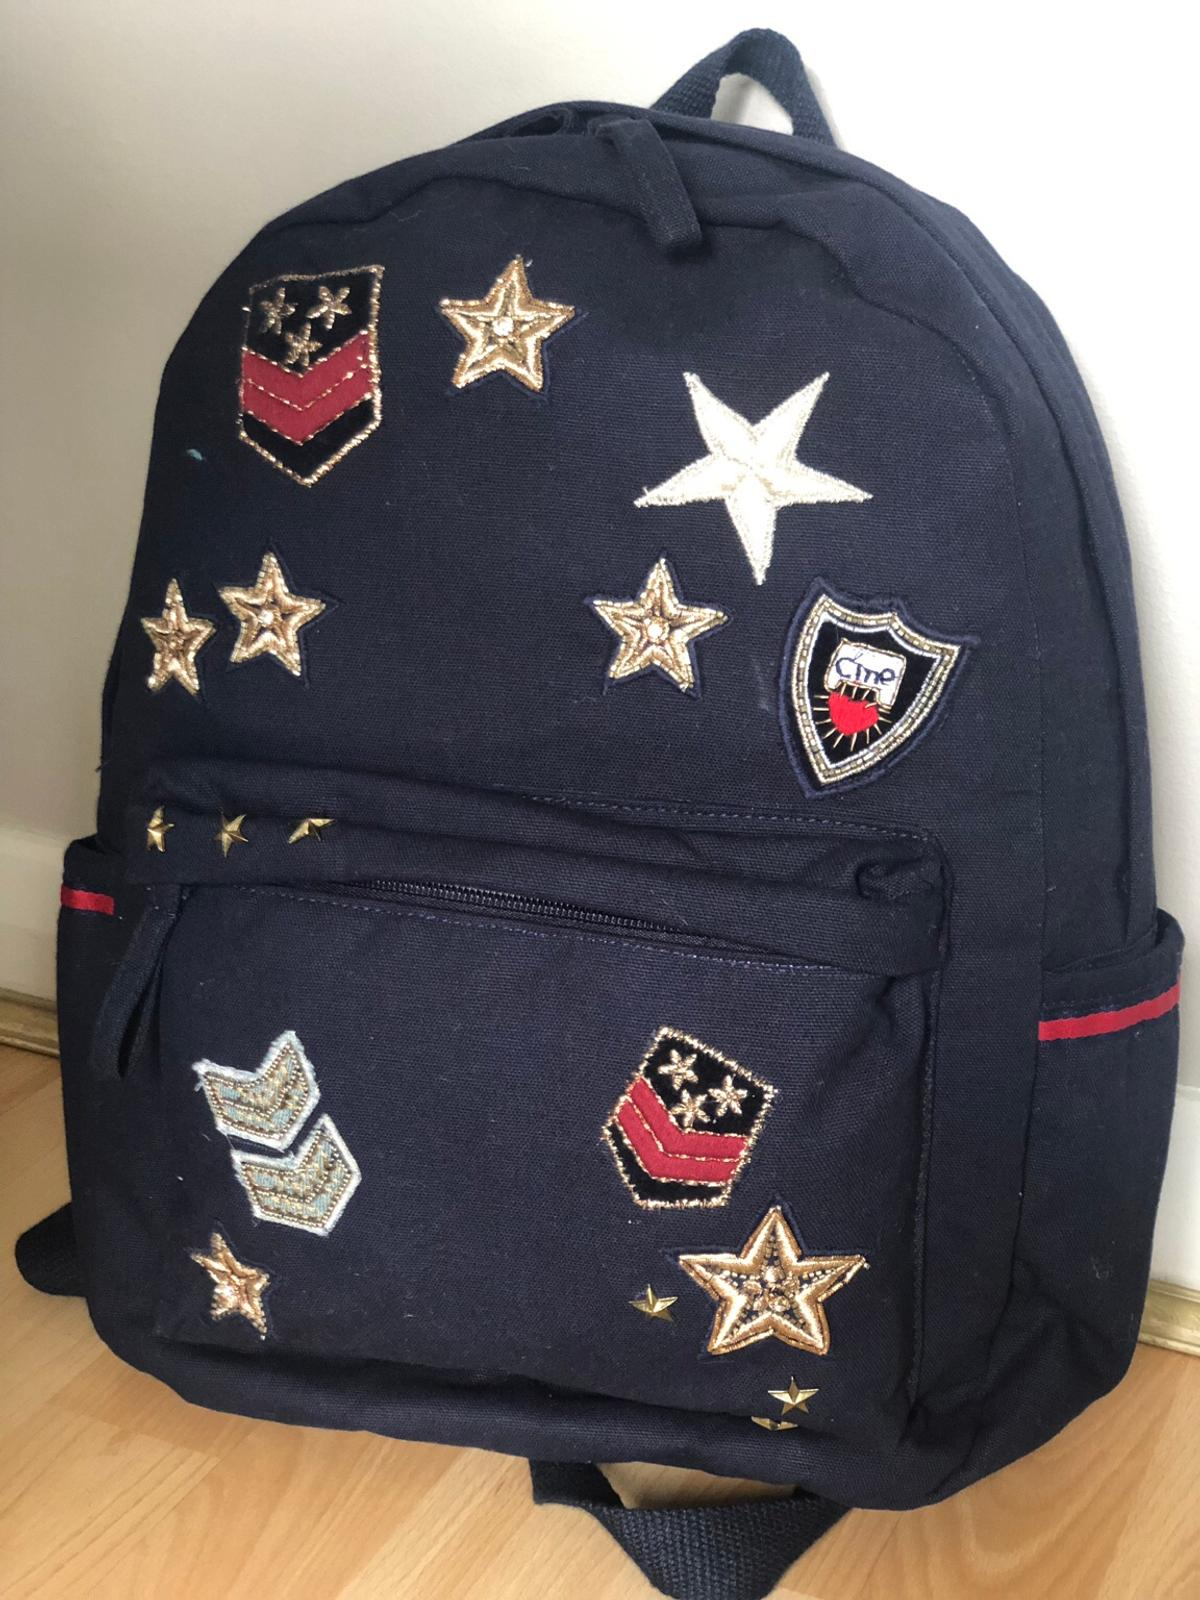 c5137bbf5 Accessorize canvas navy backpack rucksack in M25 Kirkhams for £15.00 ...